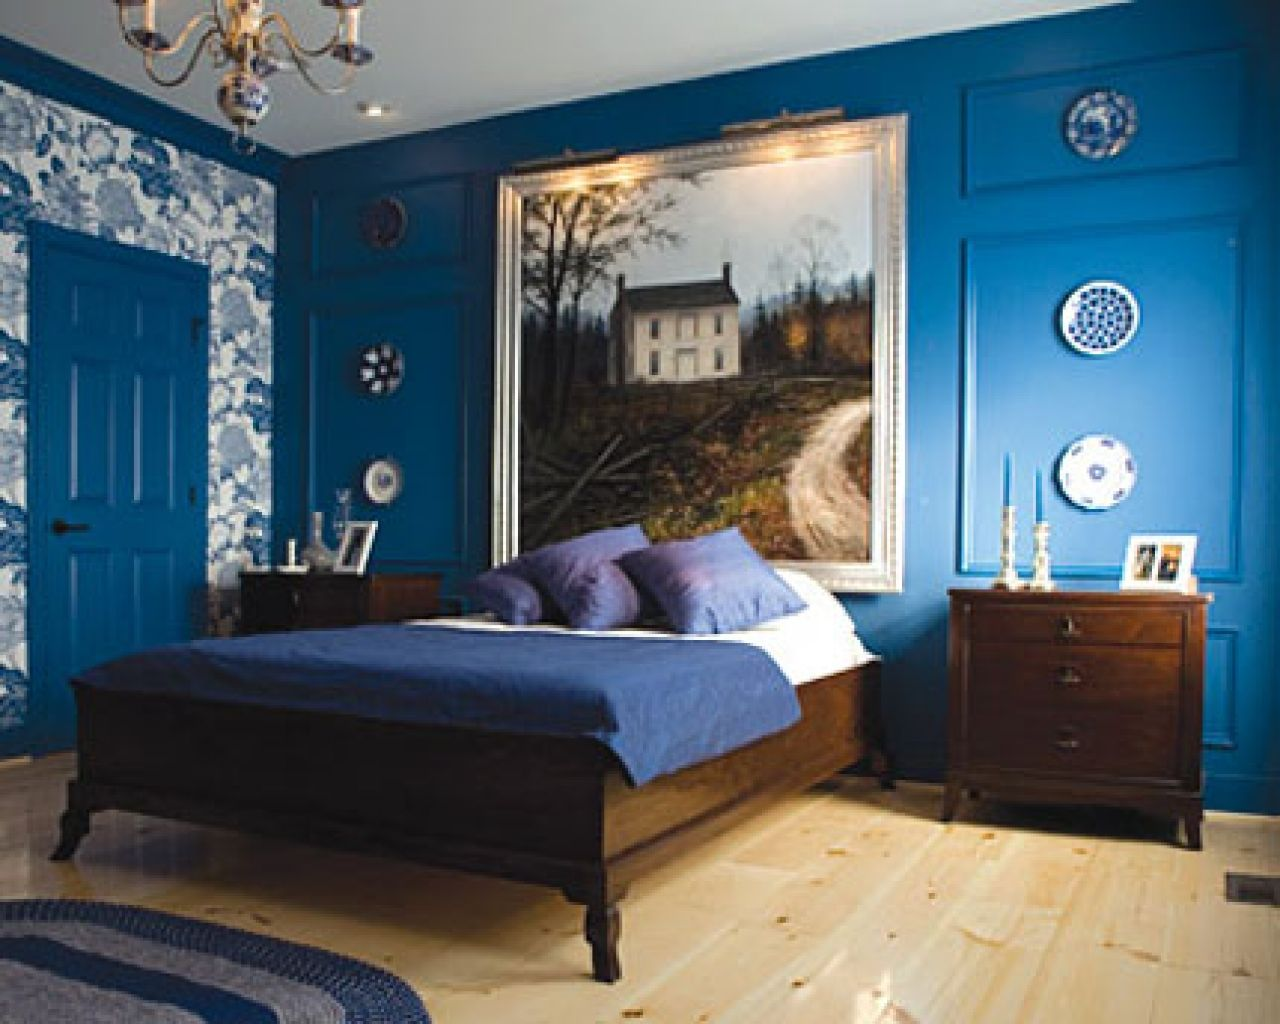 Bedroom design ideas for women blue - Bedroom Painting Design Ideas Pretty Natural Bedroom Paint Ideas Cute Blue Wall Idp Interior Design